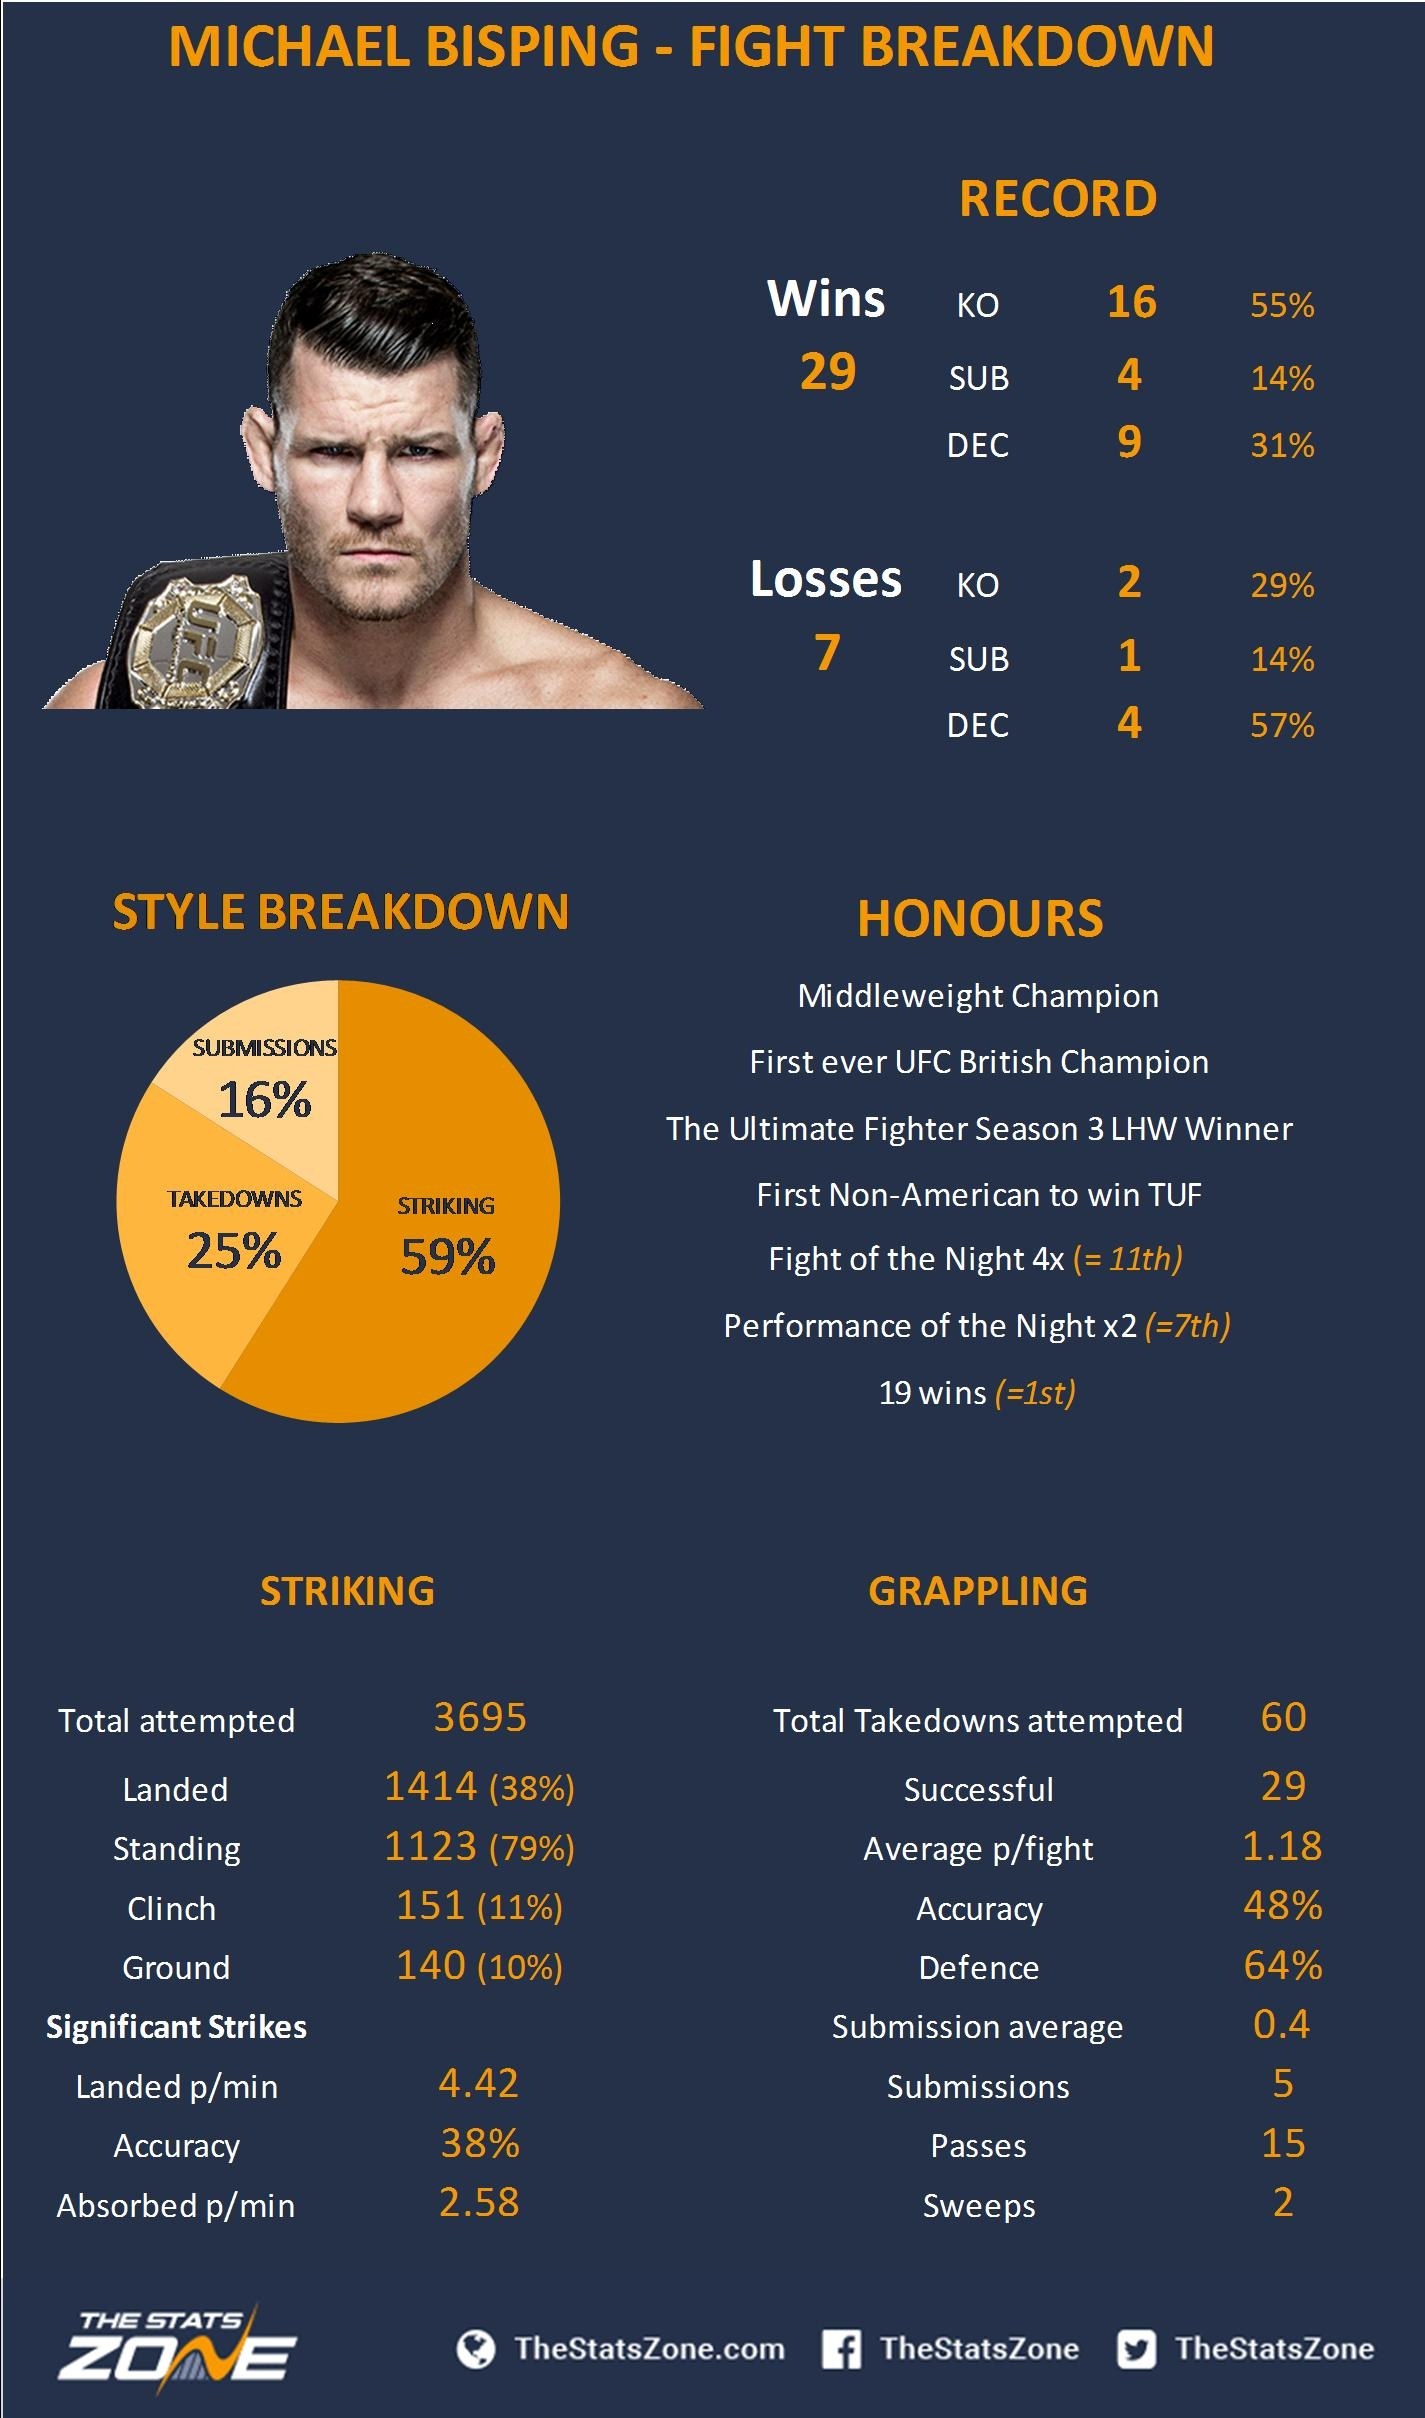 Michael Bisping stats